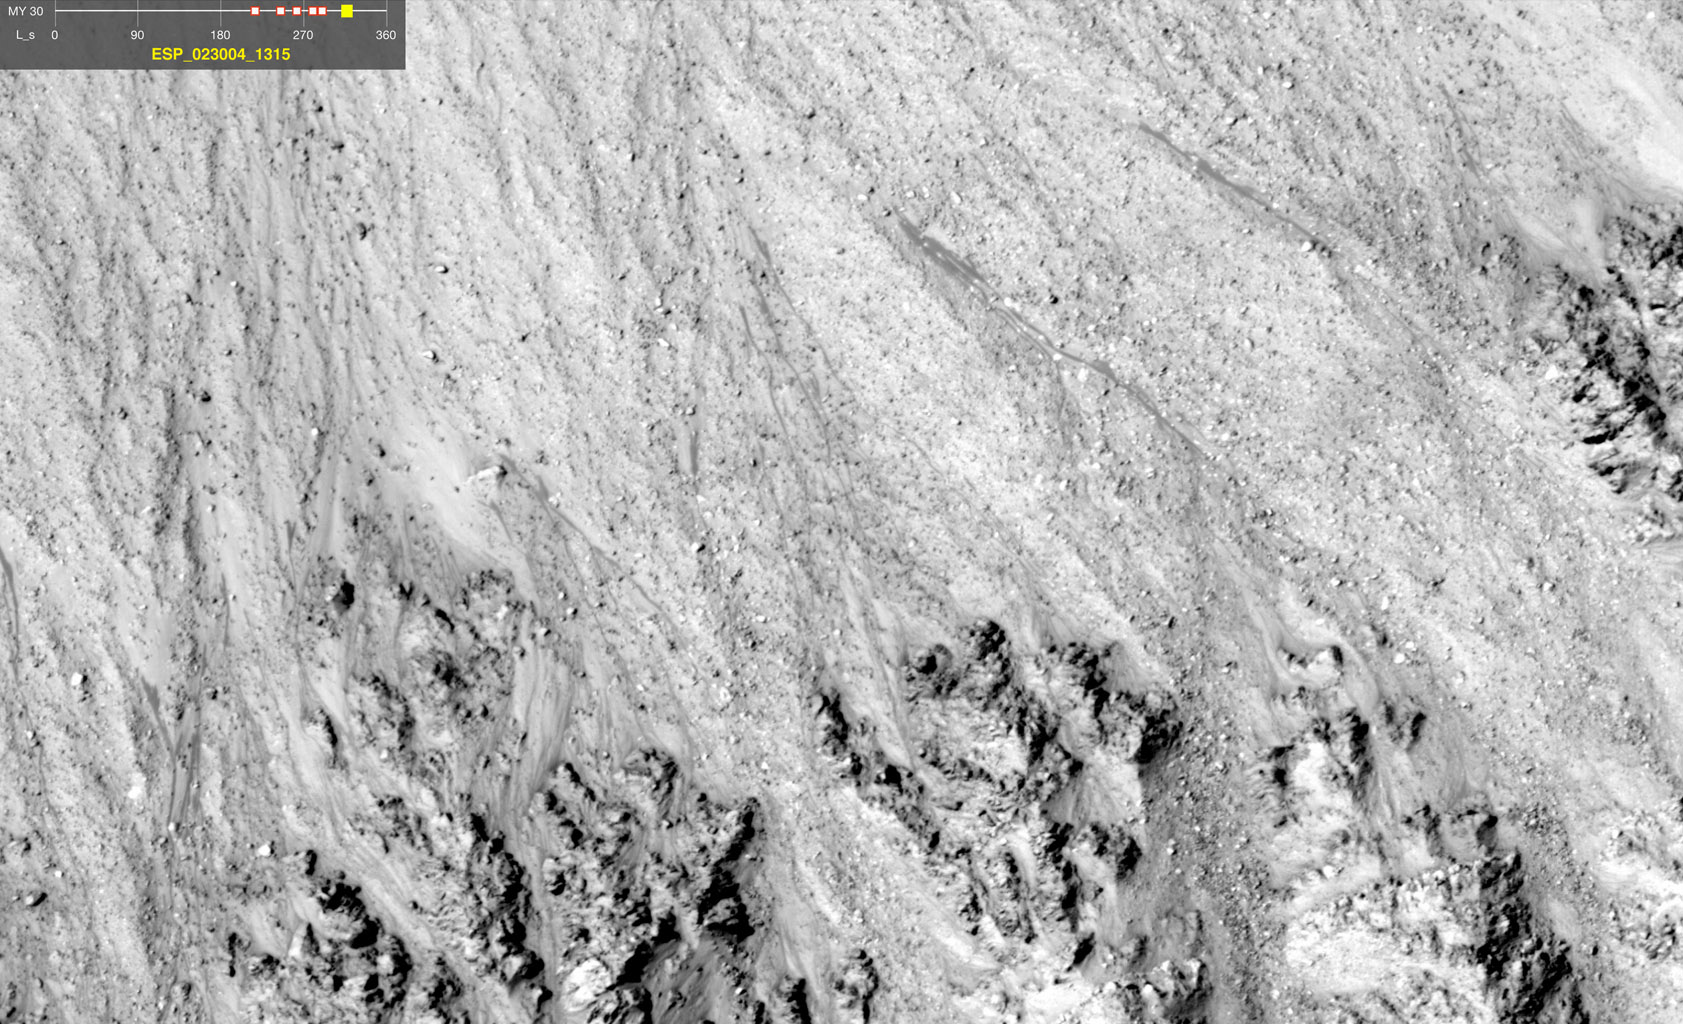 This image comes from observations of a well-preserved crater on Terra Cimmeria by the HiRISE camera onboard NASA's Mars Reconnaissance Orbiter.